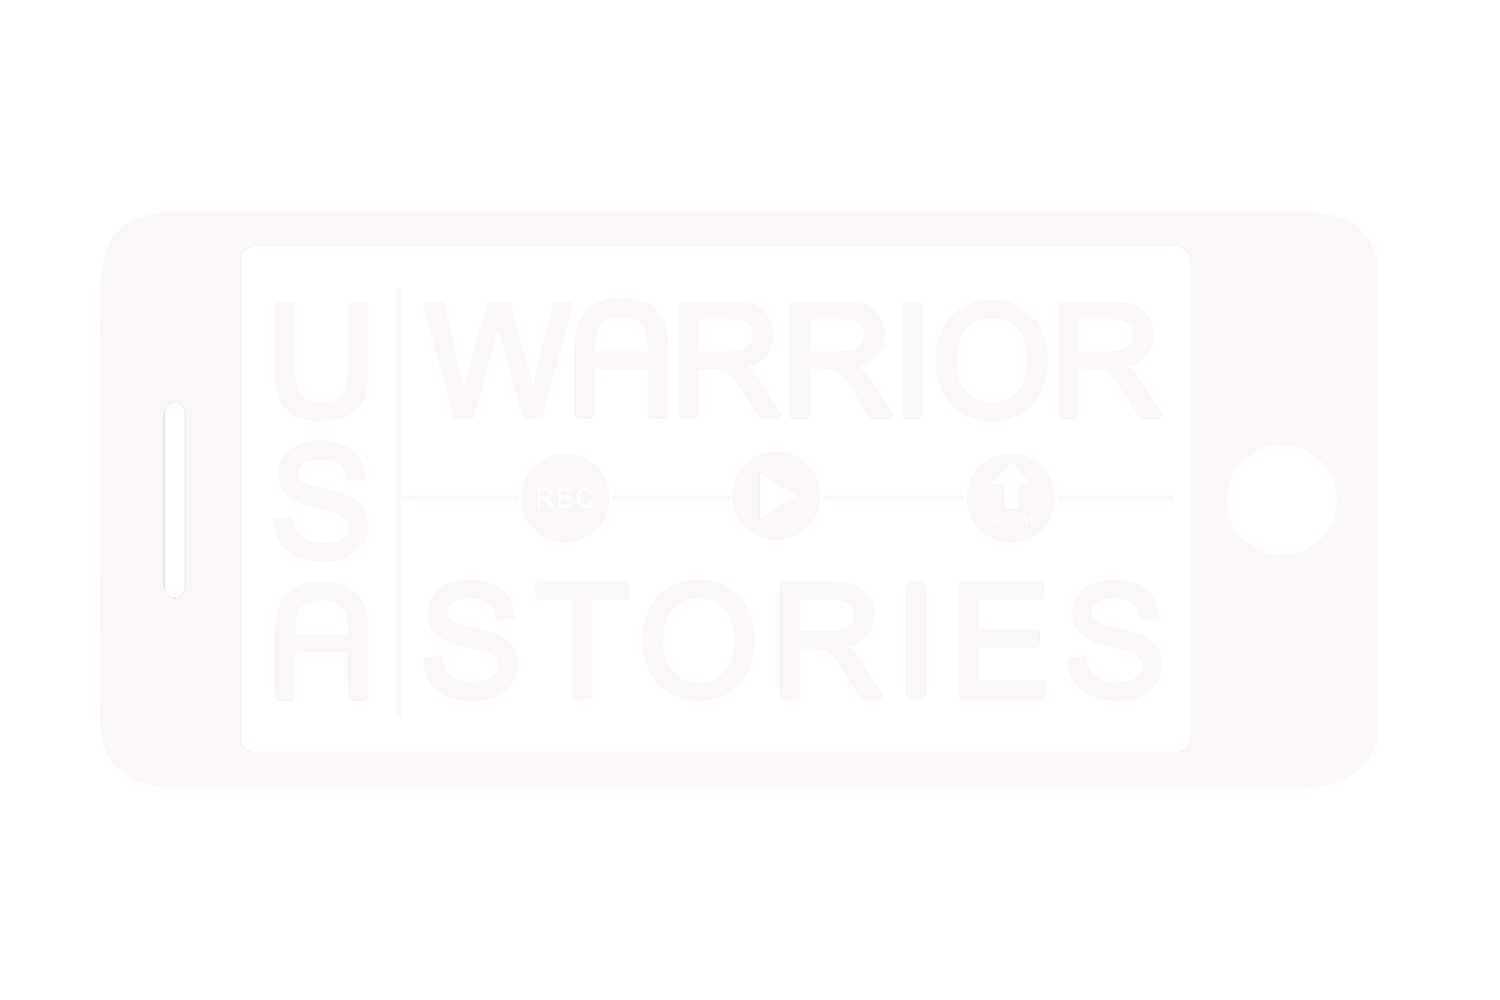 USA WARRIOR STORIES